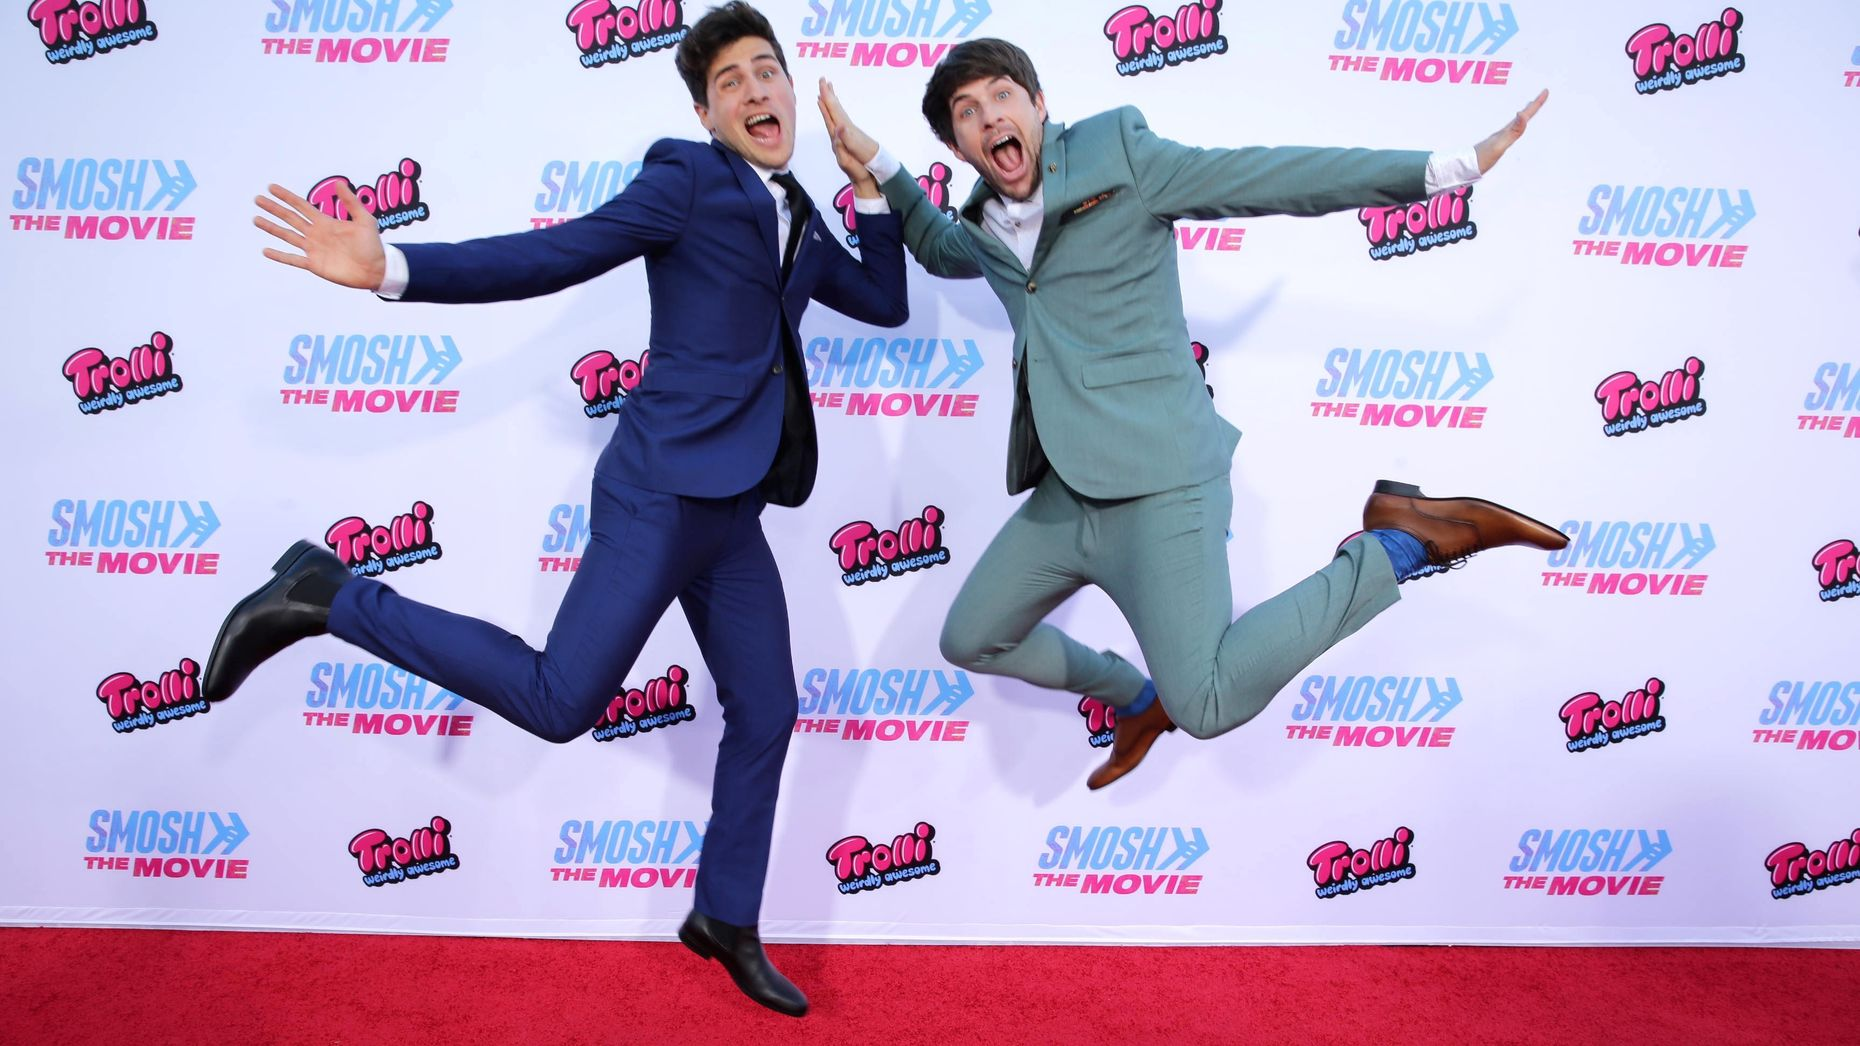 Anthony Padilla and Ian Hecox from Defy Media's Smosh series, which airs on go90.  Photo by AP.